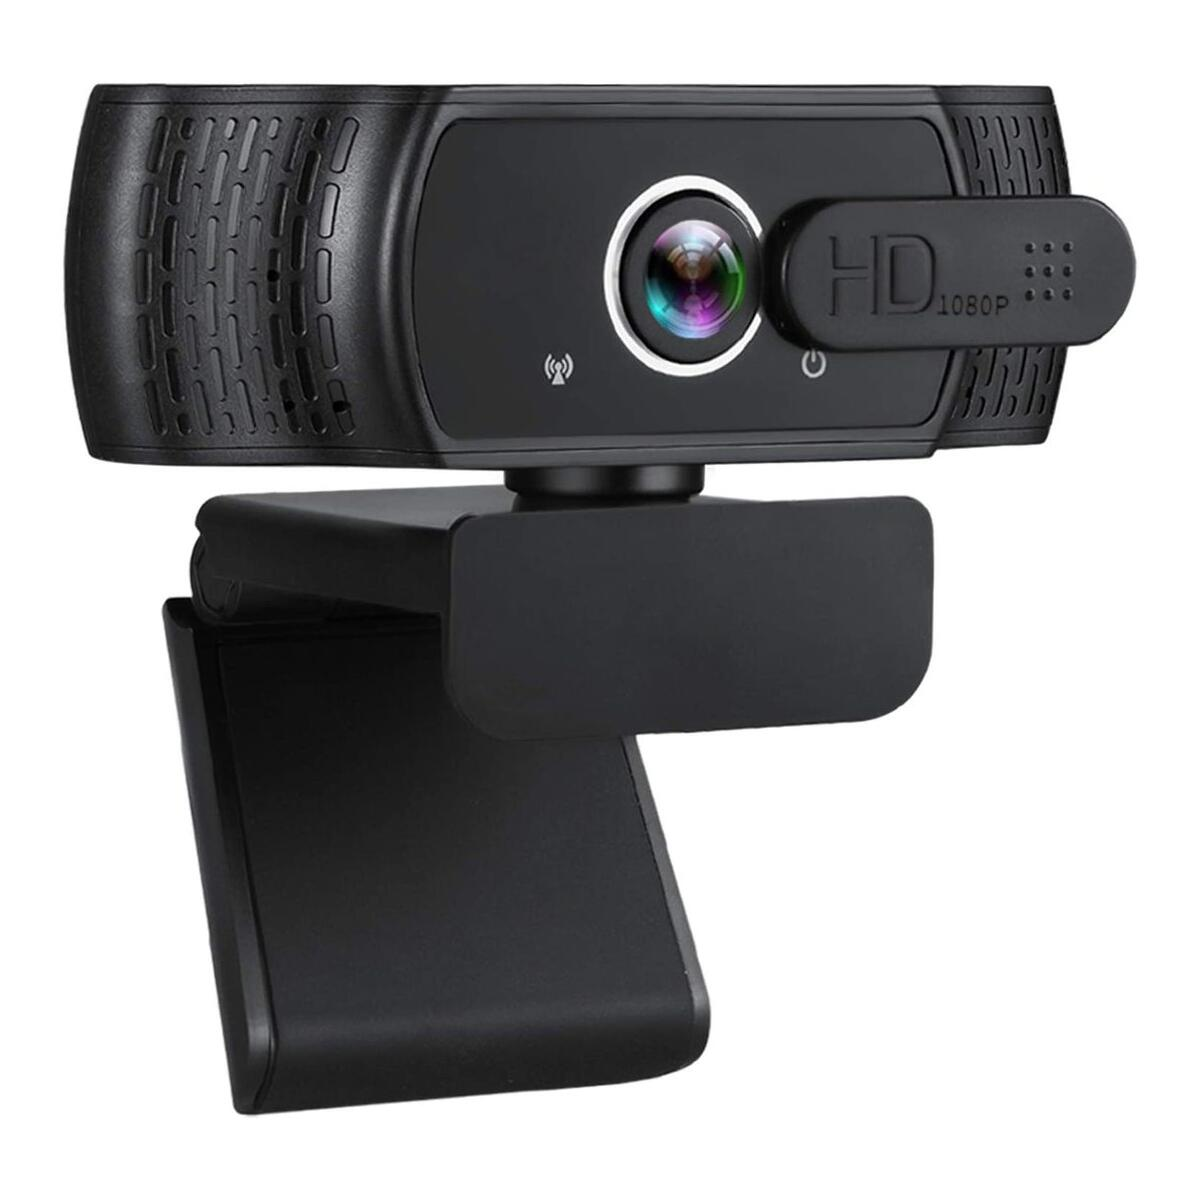 1080P HD USB Webcam with Privacy Cover